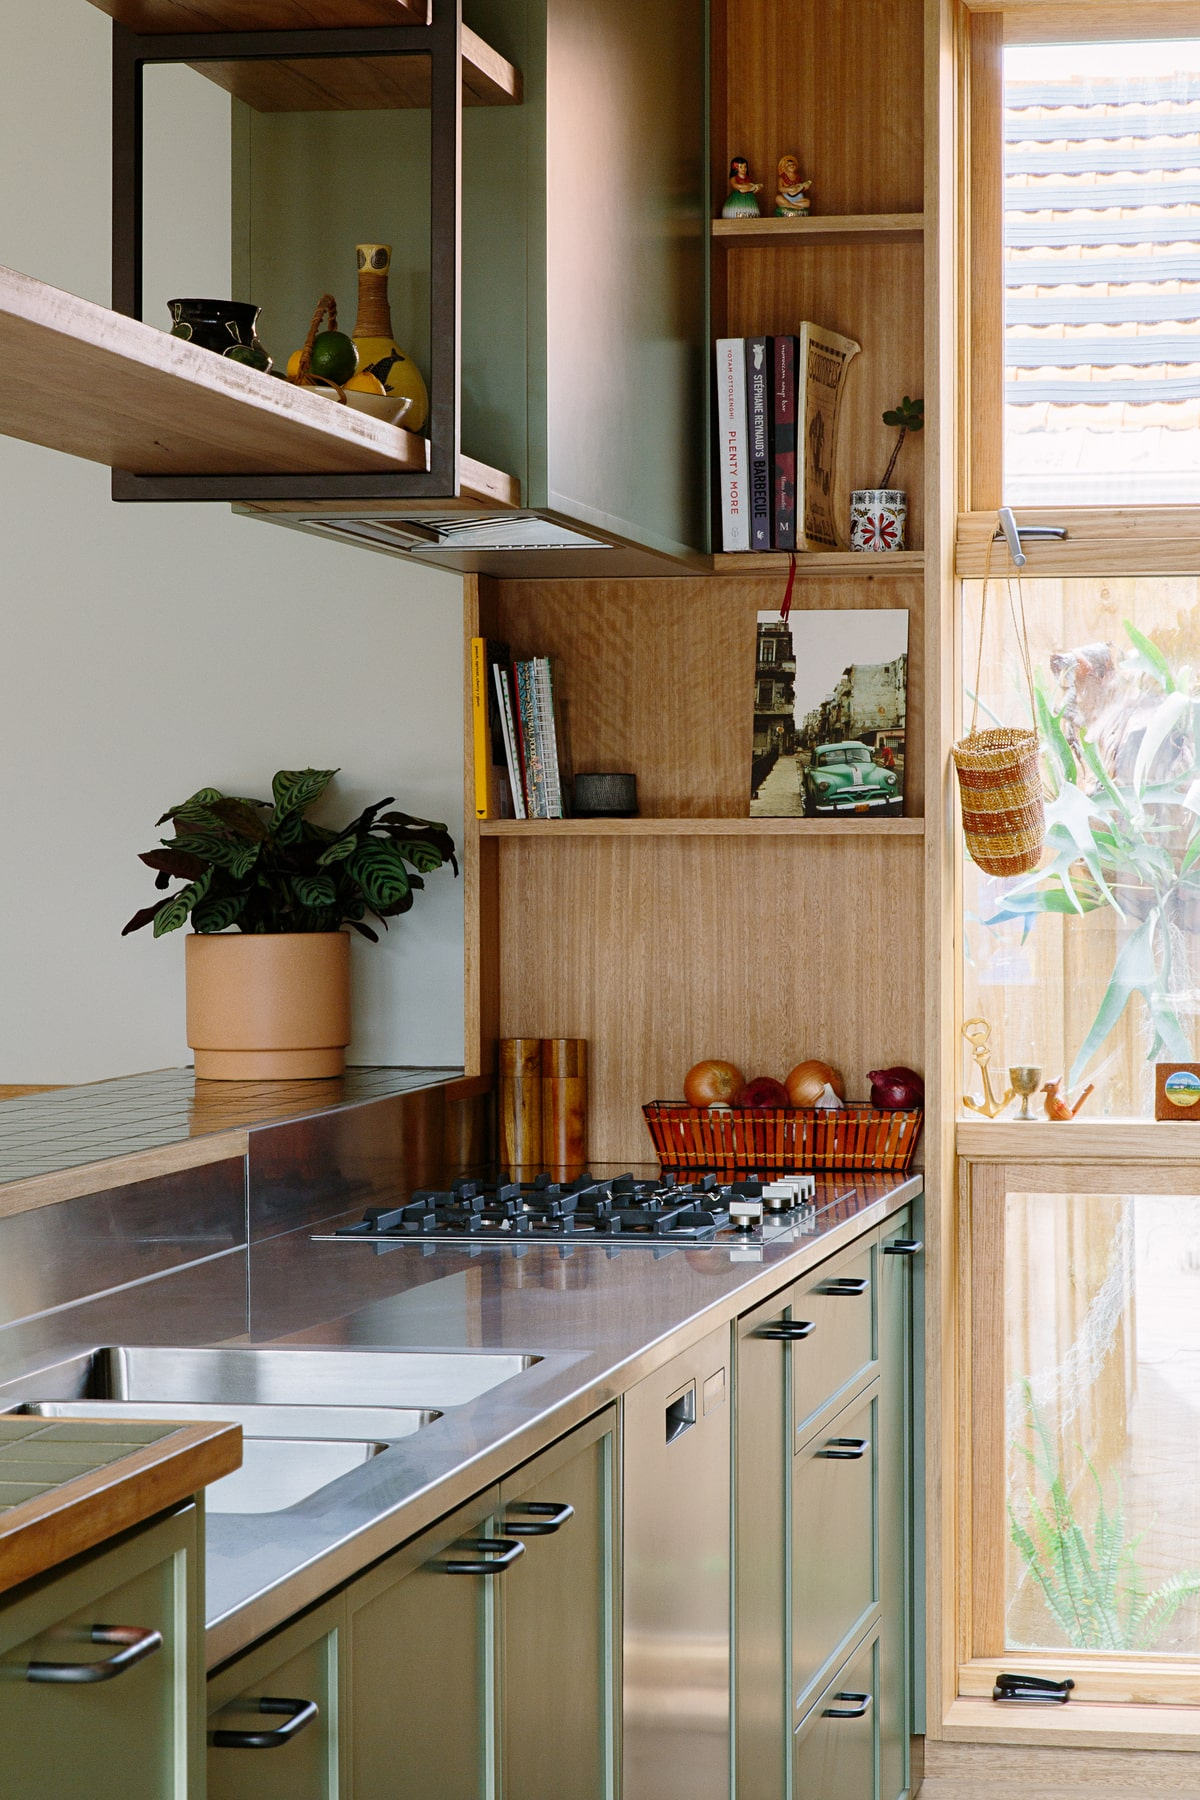 Yarravillia Project By Brave New Eco Local Residential Interiors And Architecture Design Yarraville,melbourne Image 13